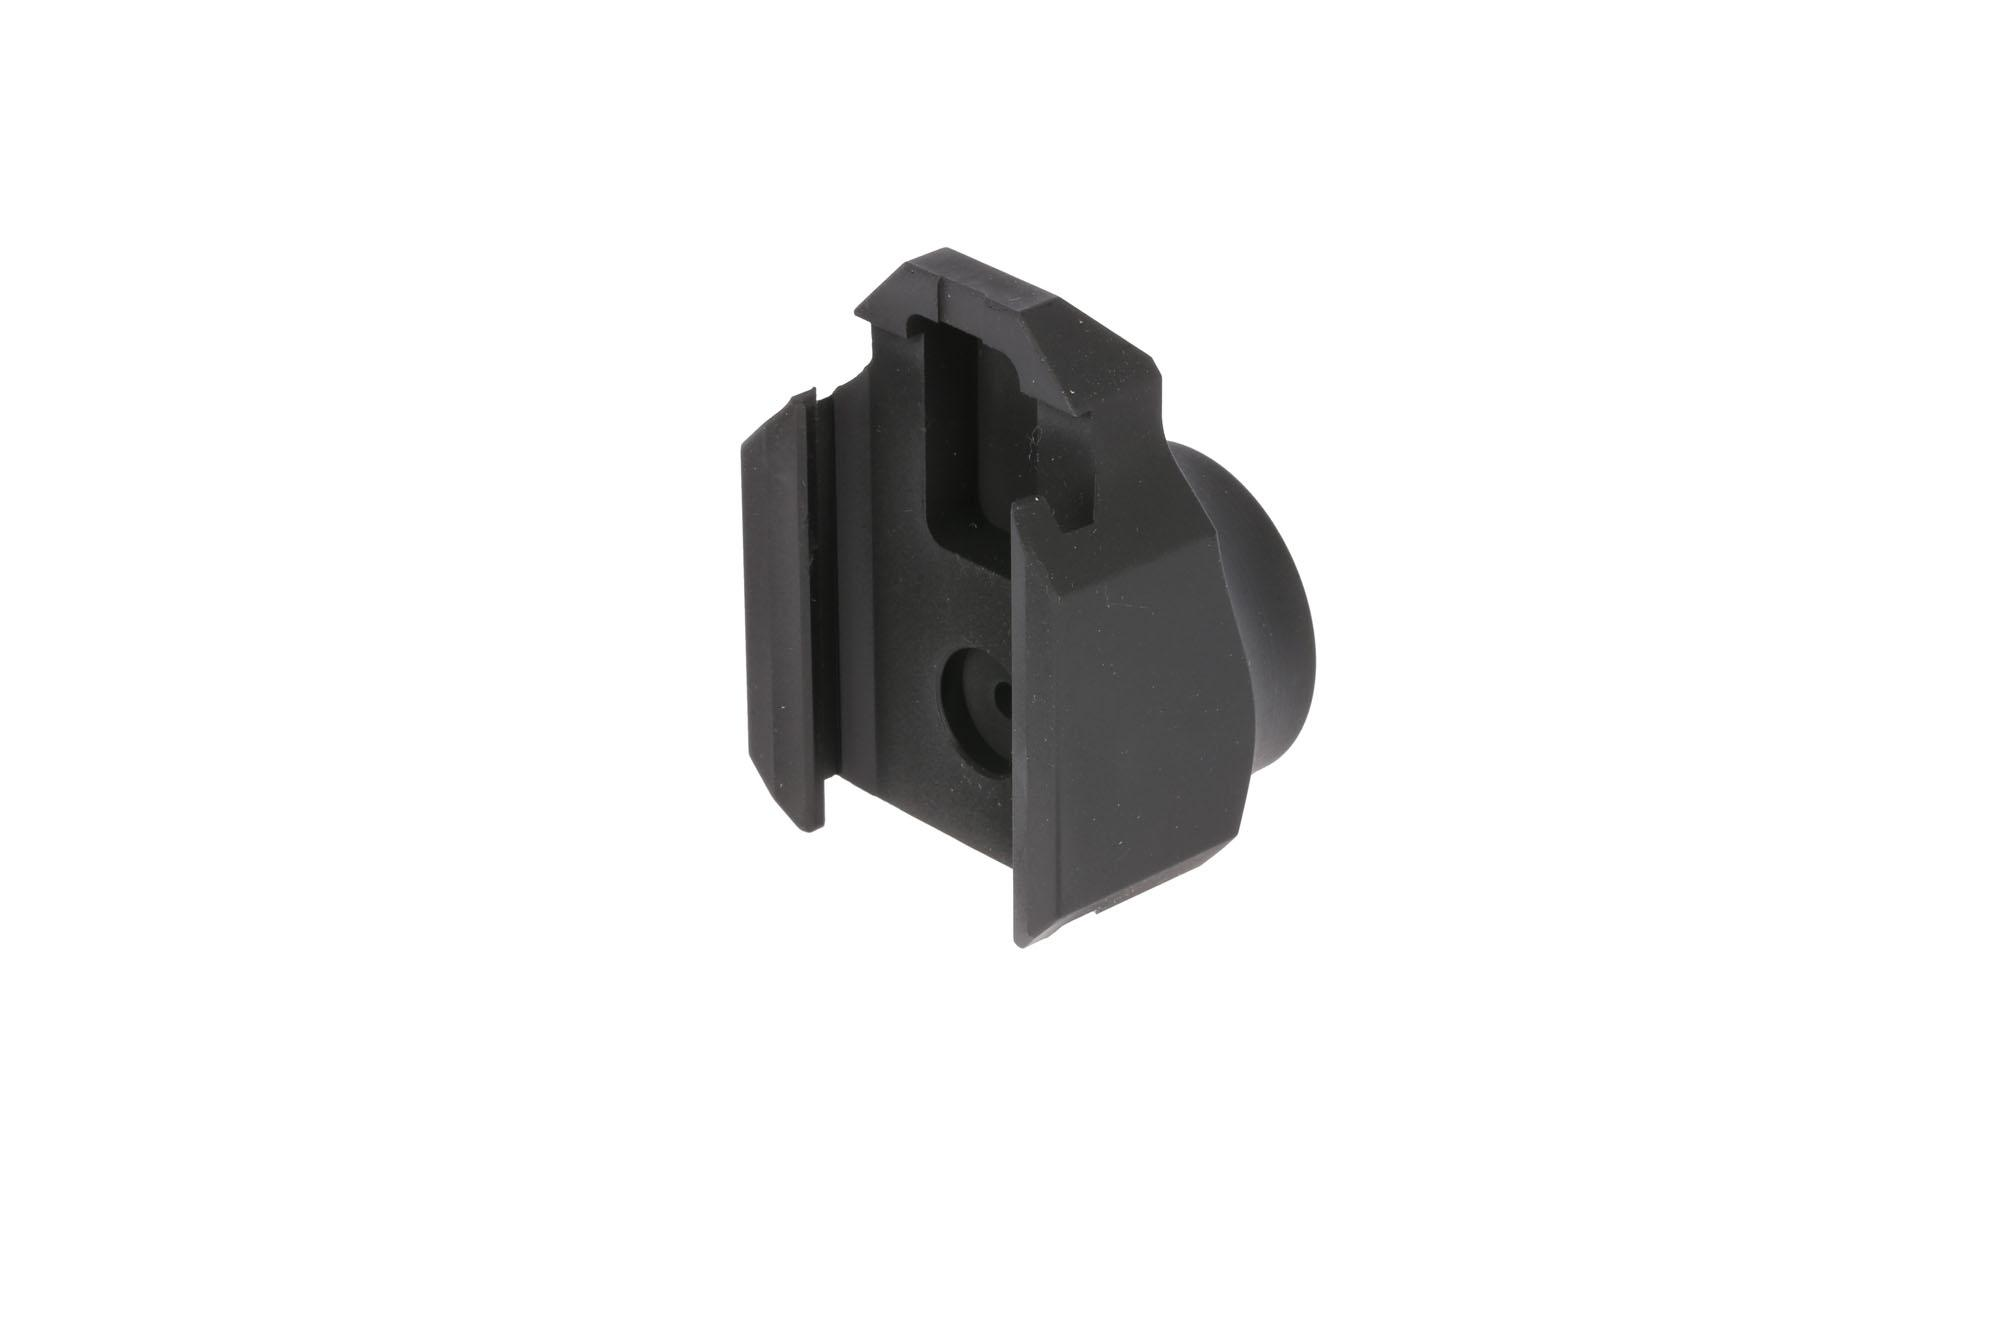 Sylvan Arms CZ Scorpion Stock Adapter